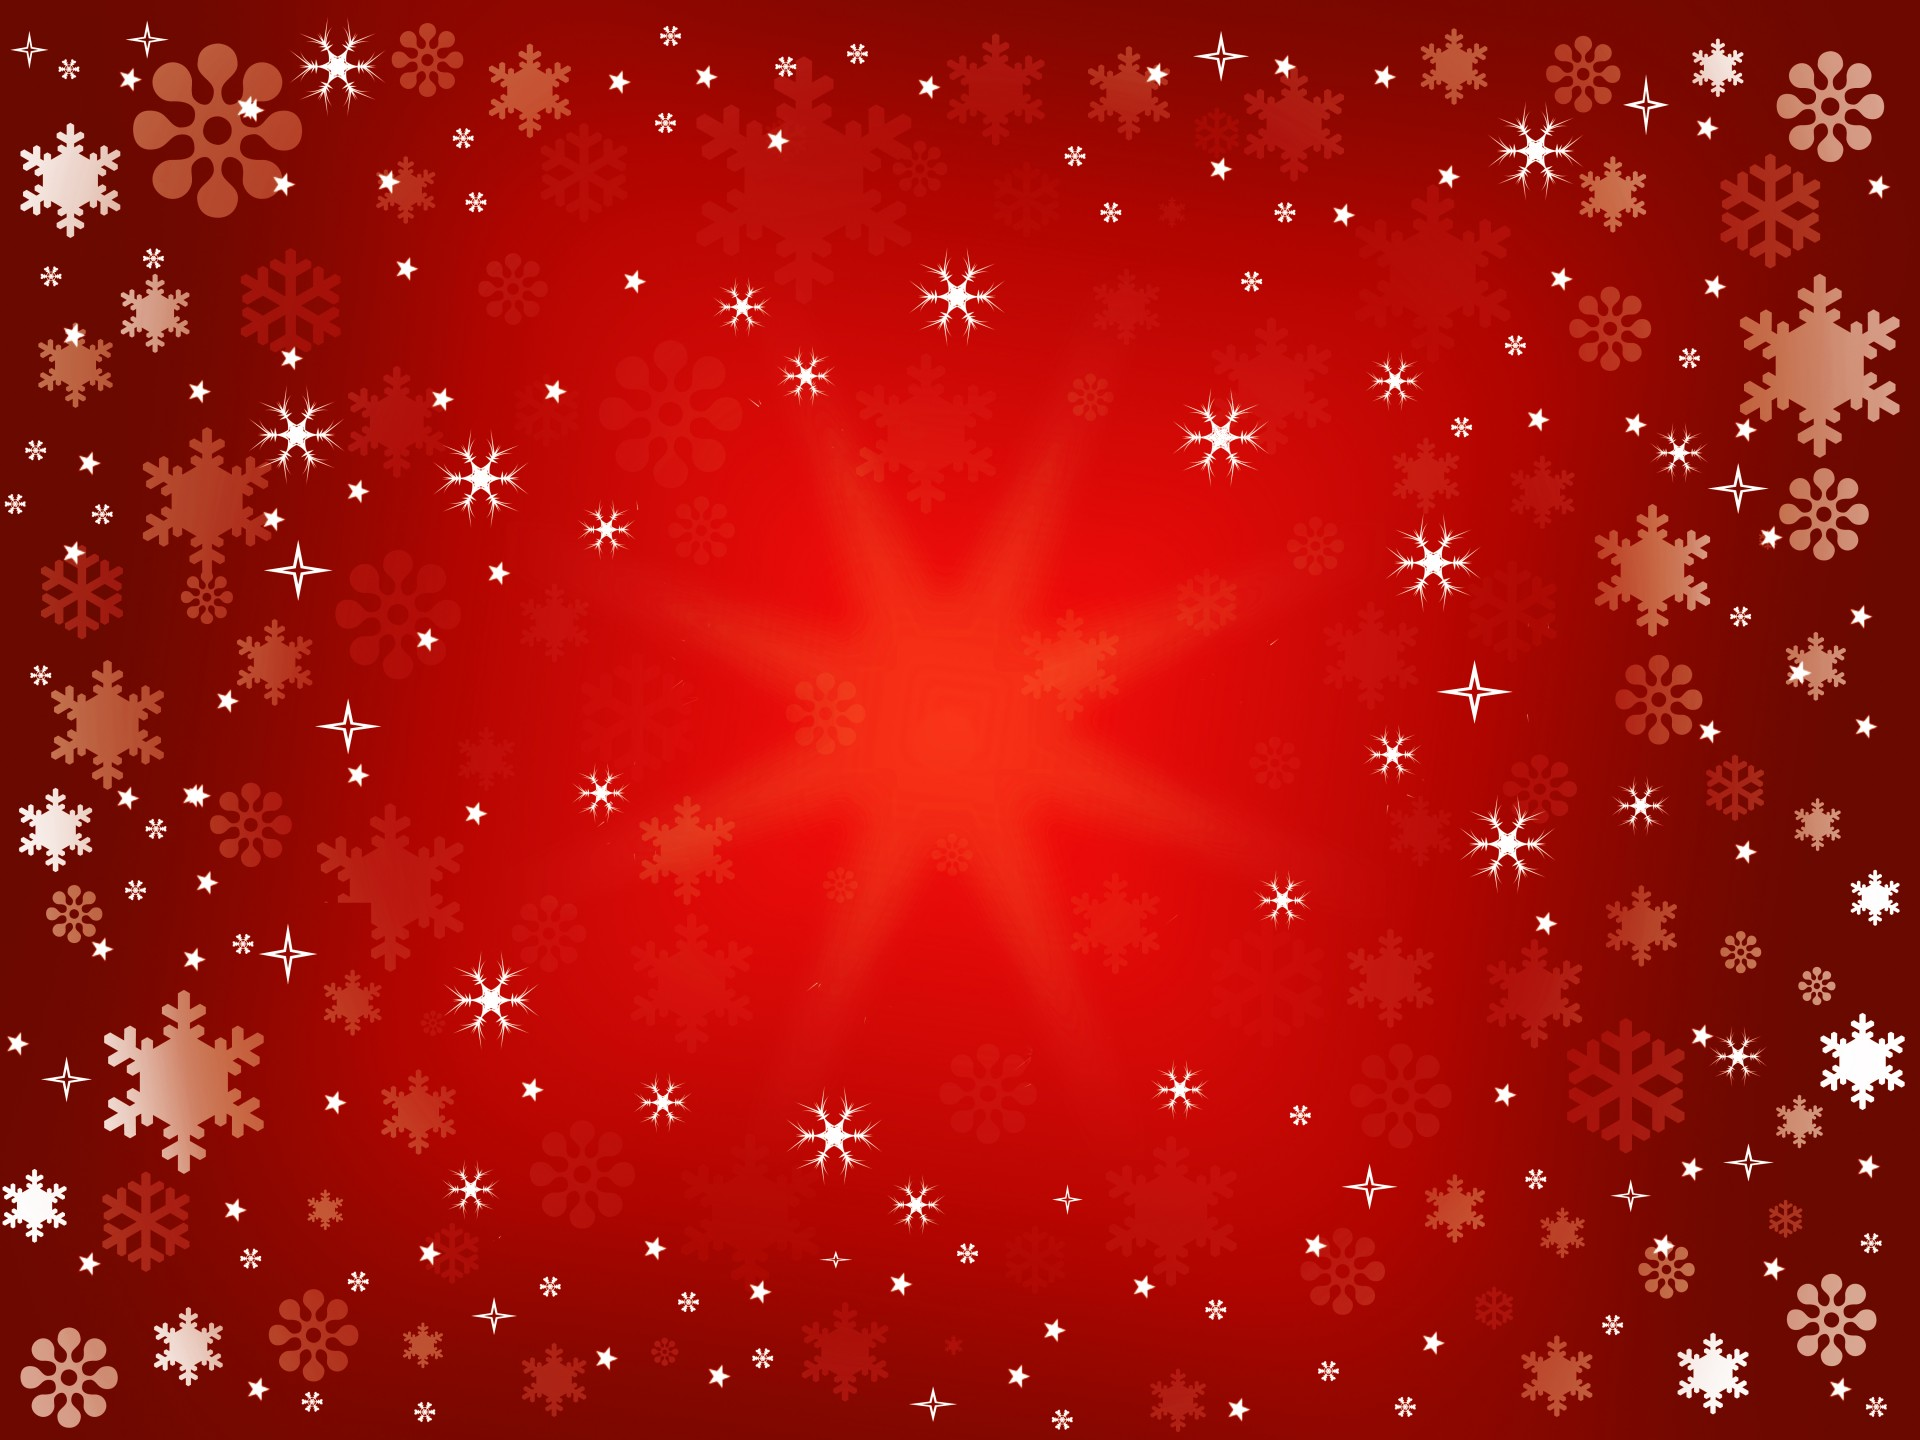 Red Holiday Background Free Stock Photo  Public Domain Pictures